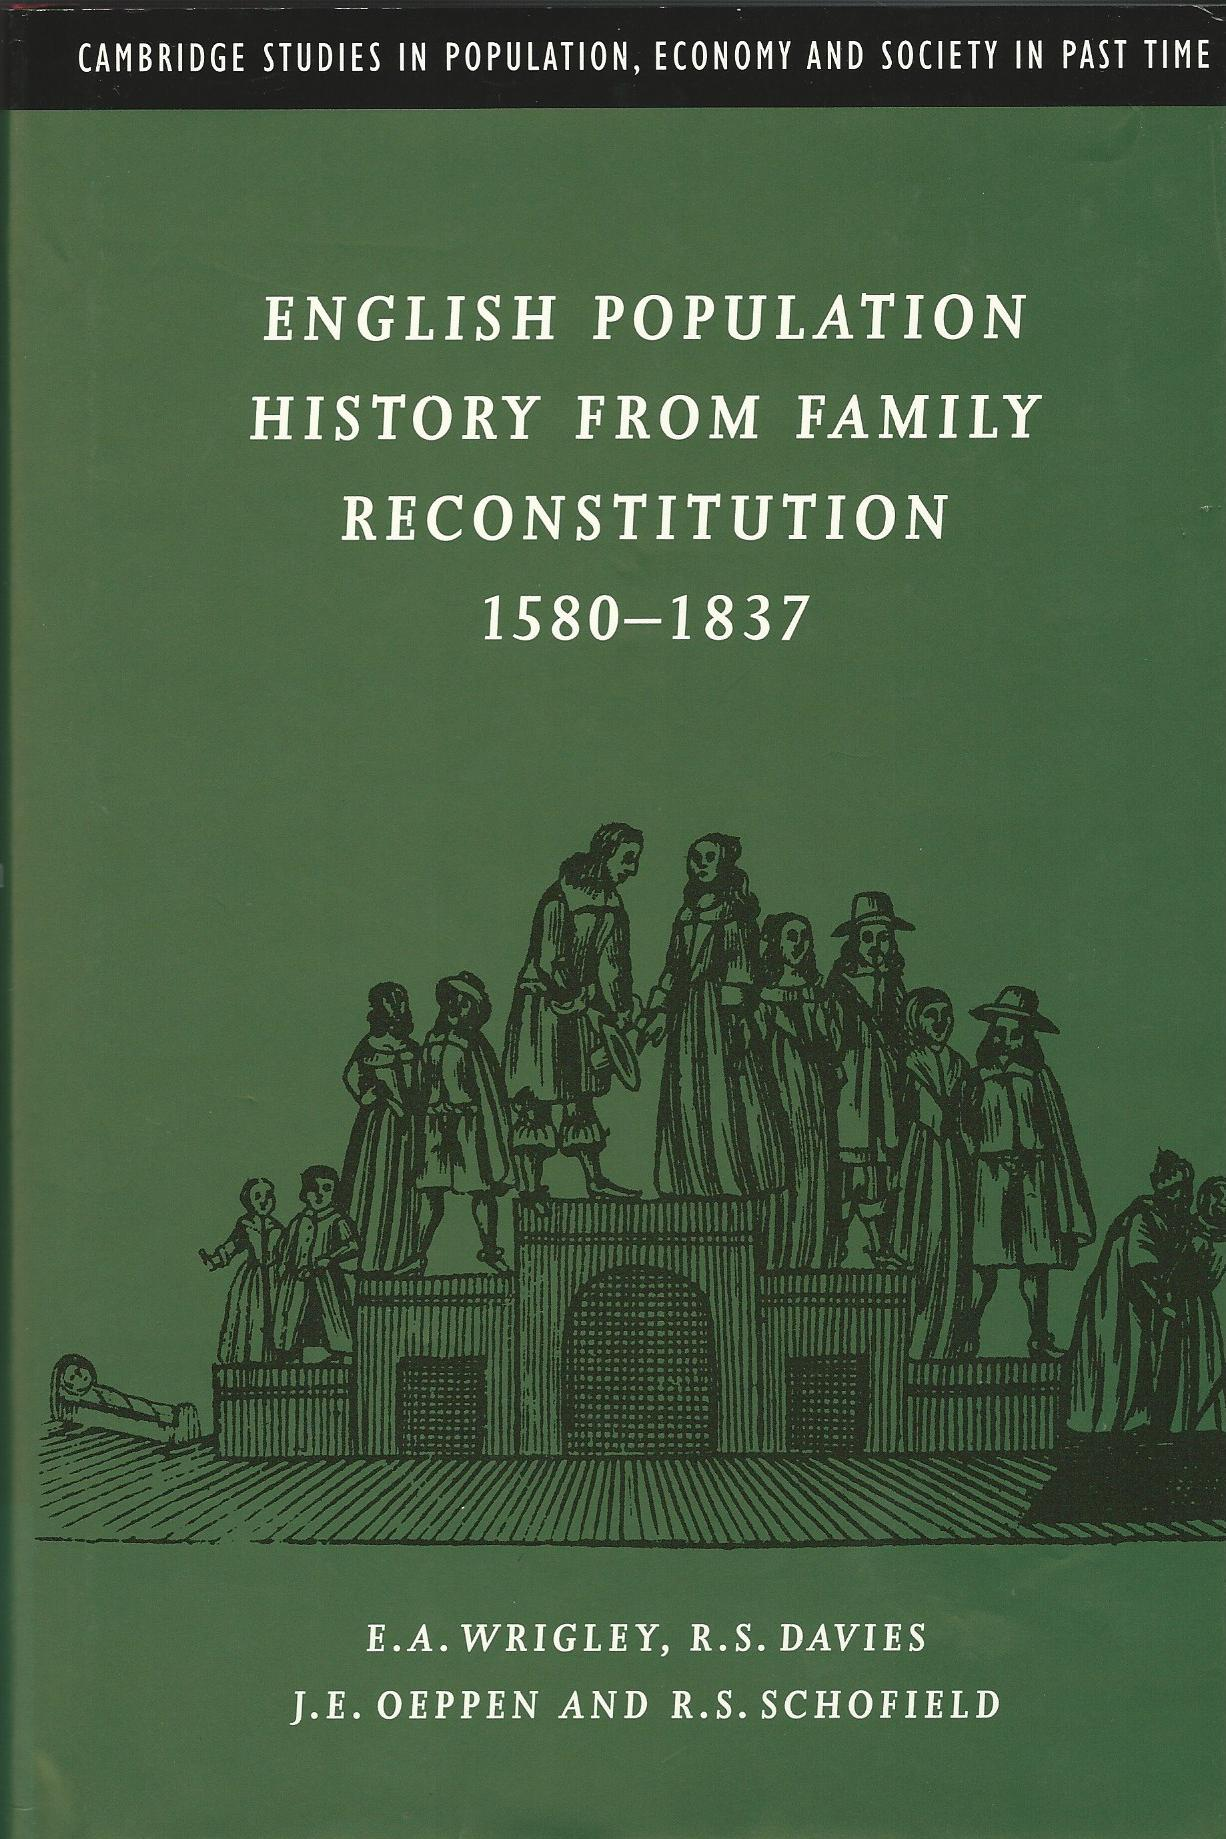 Image for English Population History from Family Reconstitution 1580-1837 (Cambridge Studies in Population, Economy and Society in Past Time)